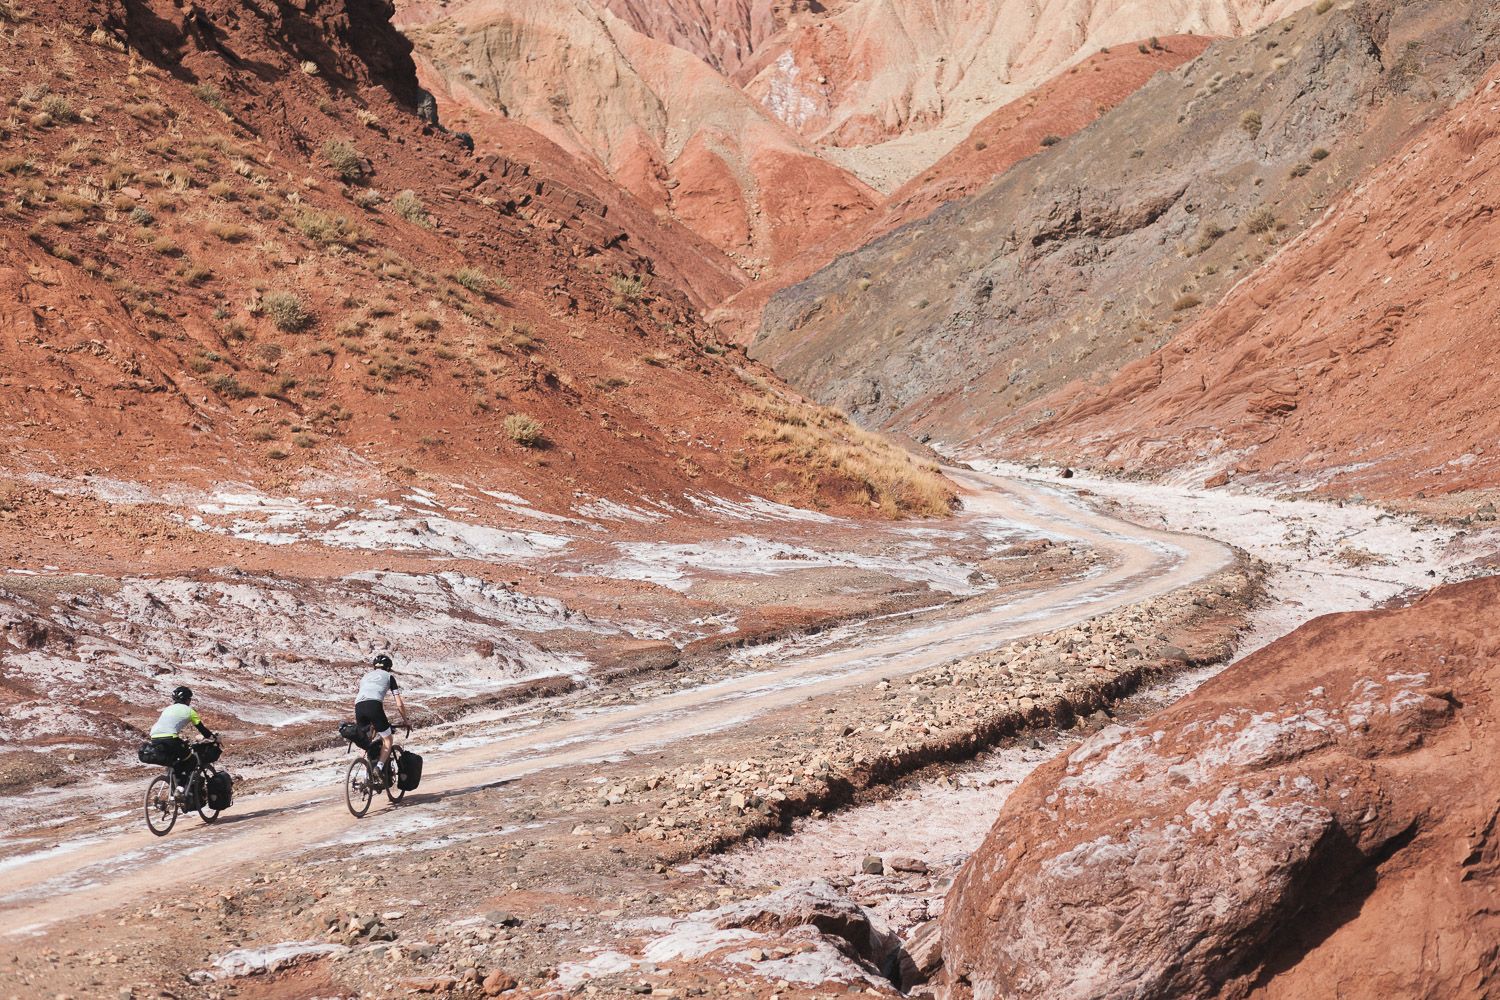 8bar bikes adventures morocco gravel 20151211 0045 bearbeitet - 8bar Adventures - Morocco - High Atlas - Part 2/2